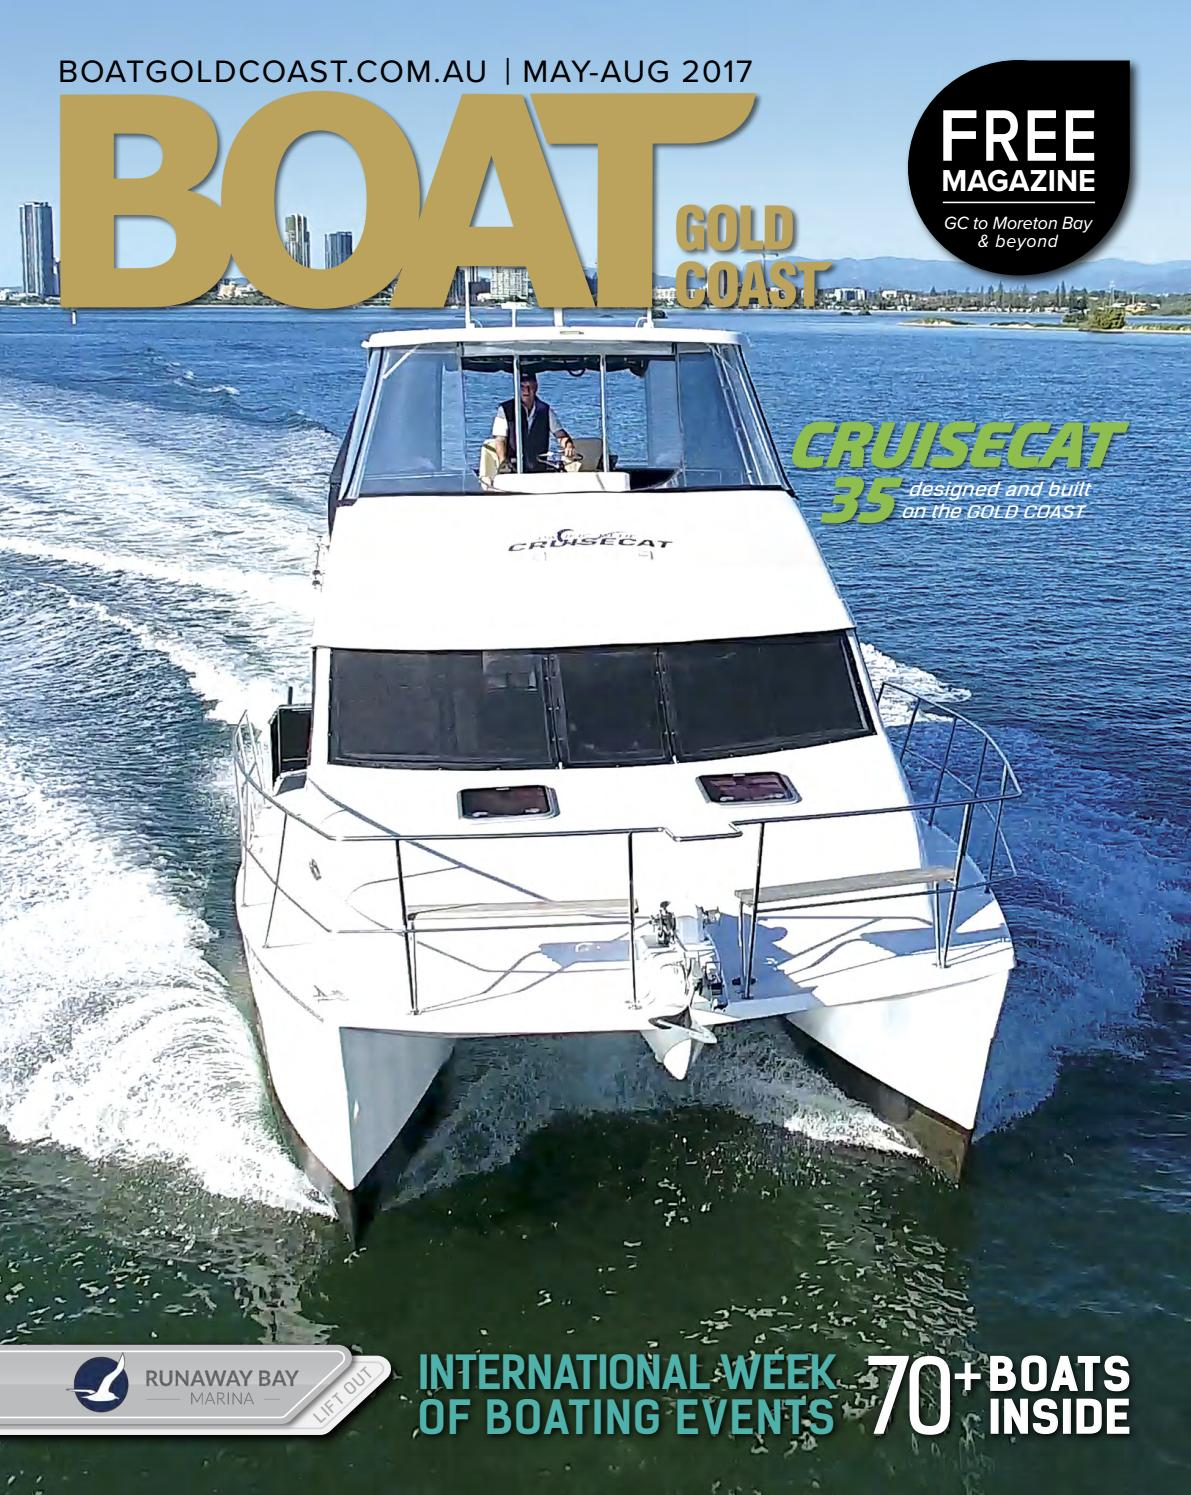 Prix Corian Au M2 boat gold coast magazine may - august 2017boat gold